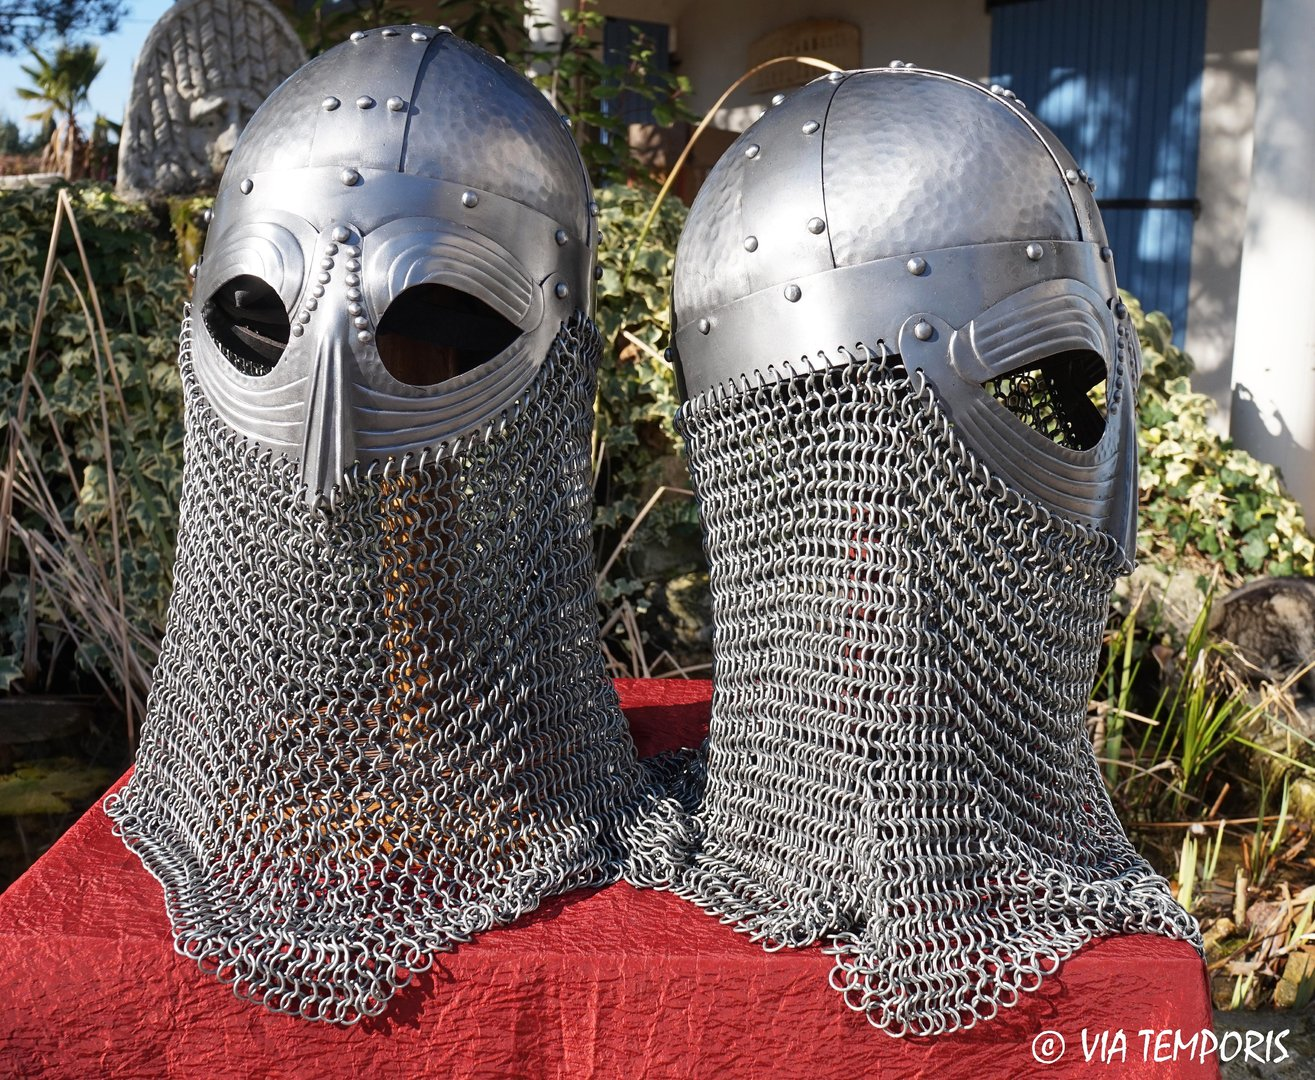 VIKING HELMET WITH EYE GUARD AND CHAINMAIL NECK PROTECTION